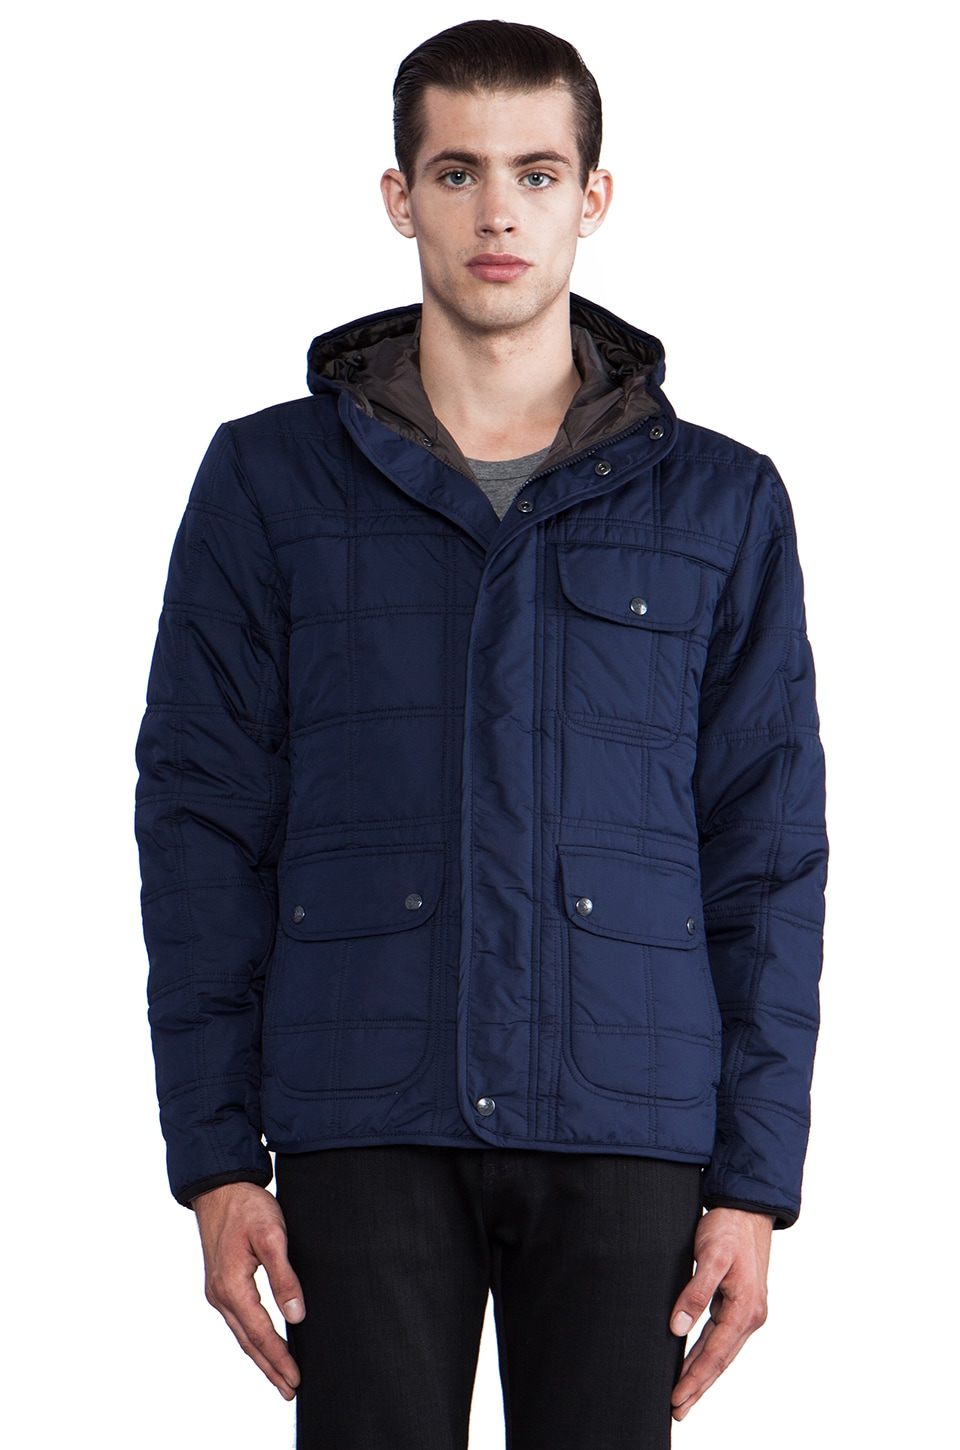 Spiewak Block Island Jacket in Patrol Navy